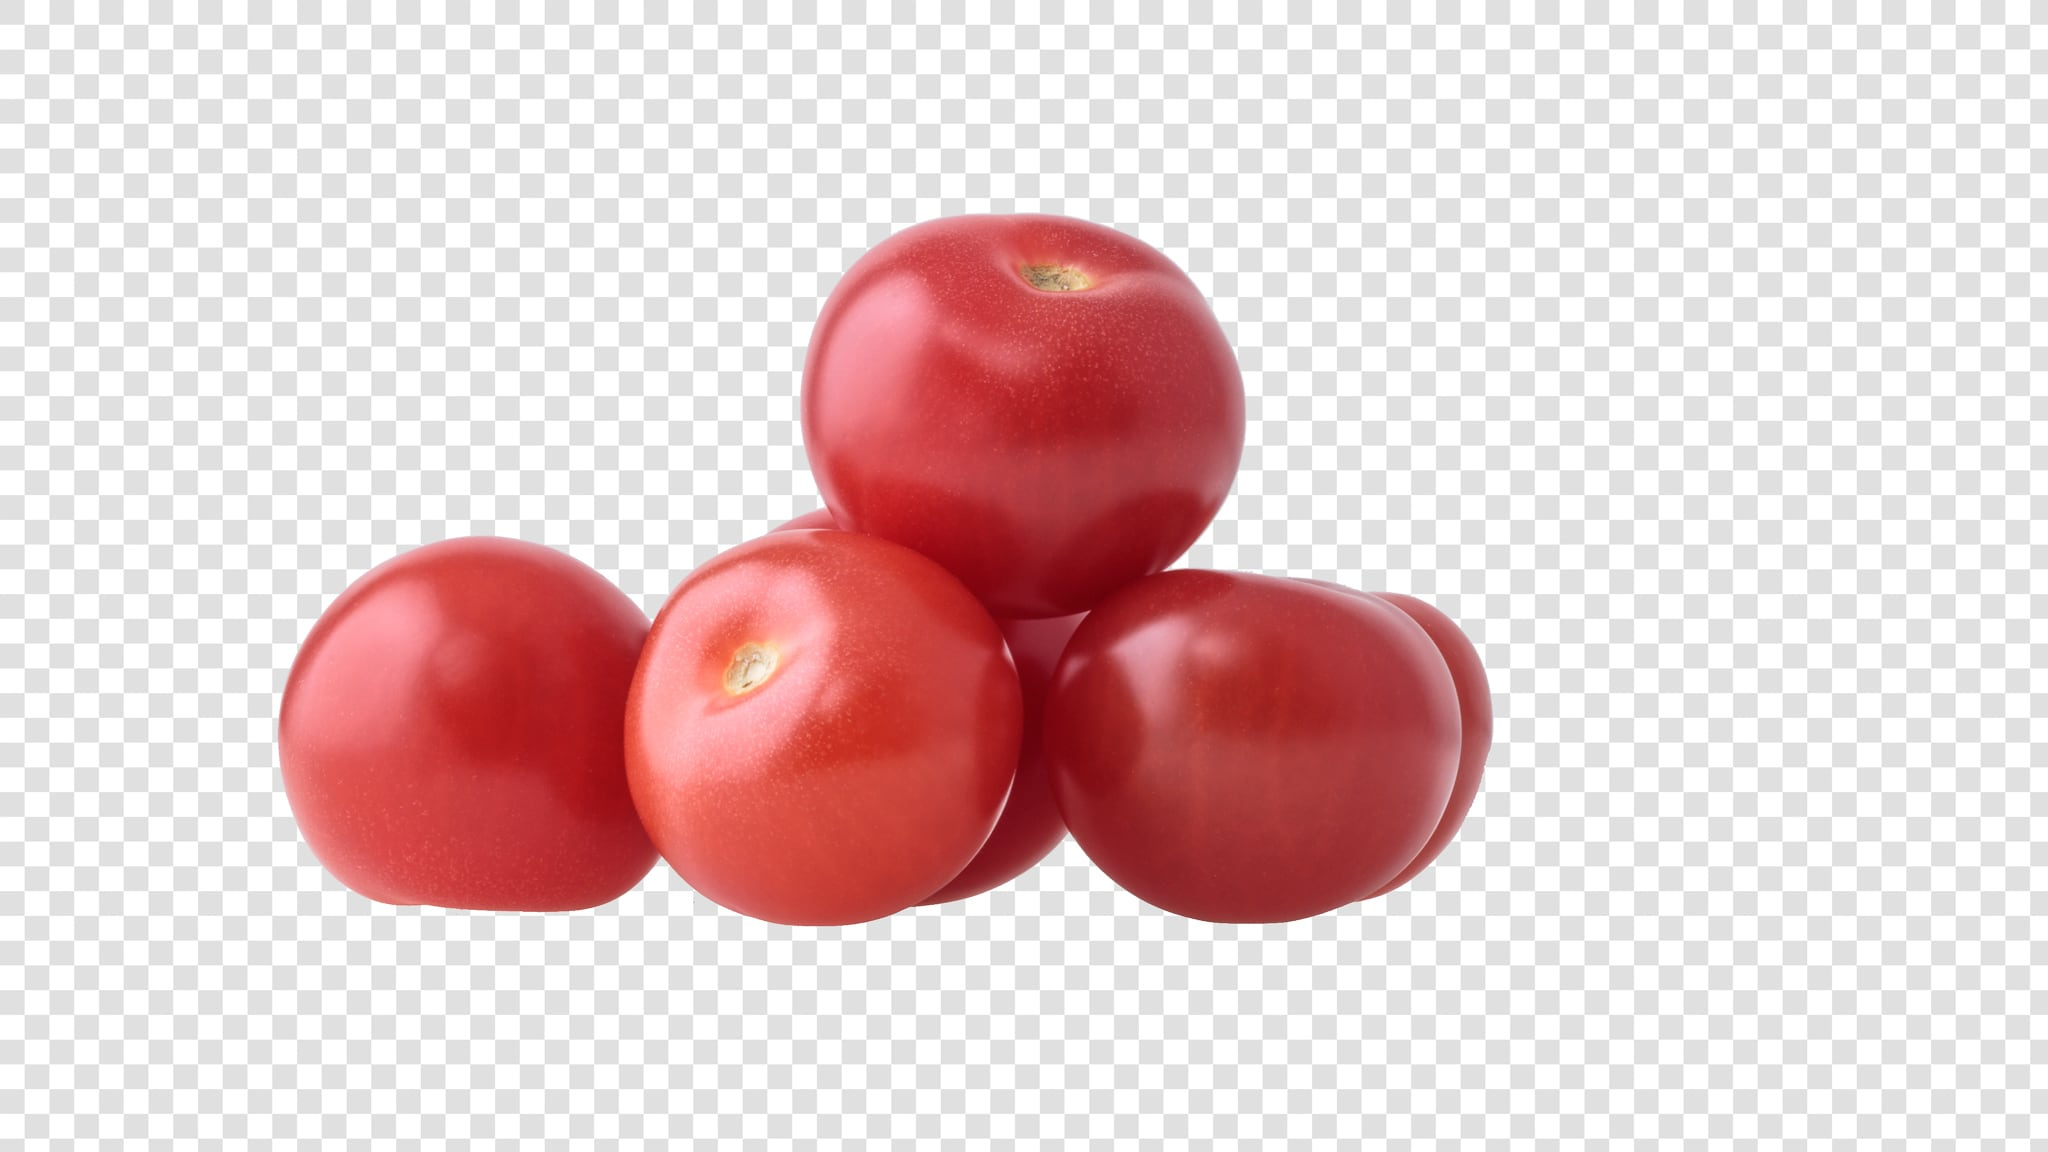 Cherry image asset with transparent background